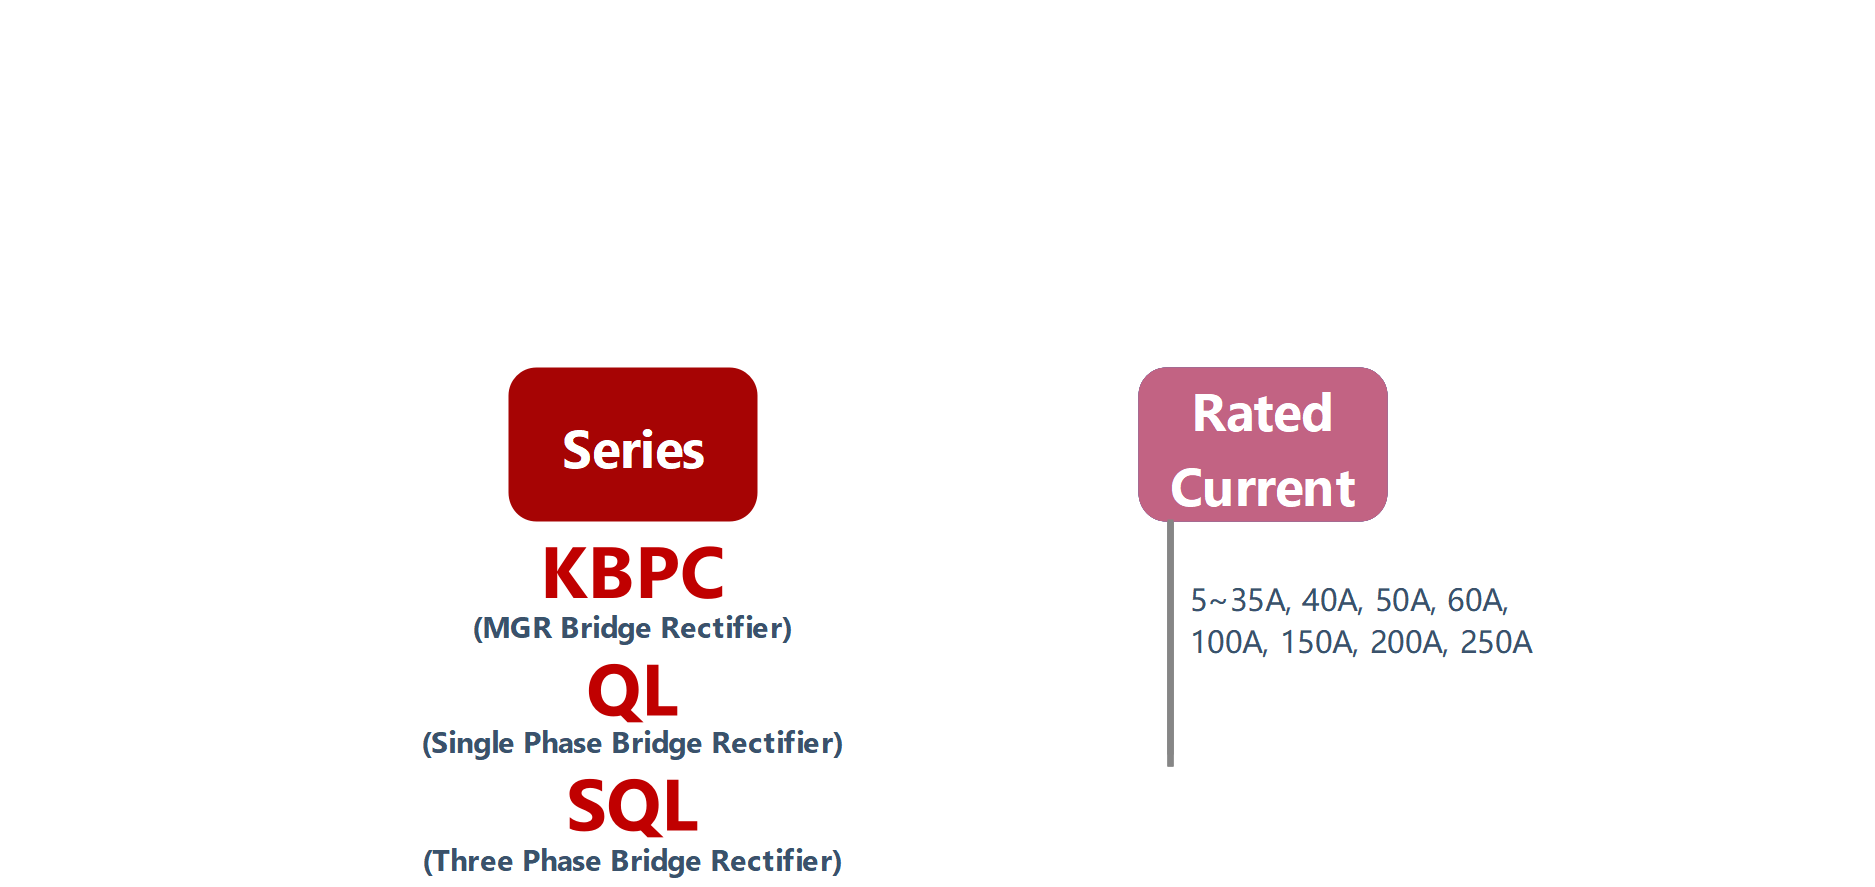 How to order KBPC, QL, SQL Series Solid State Rectifier